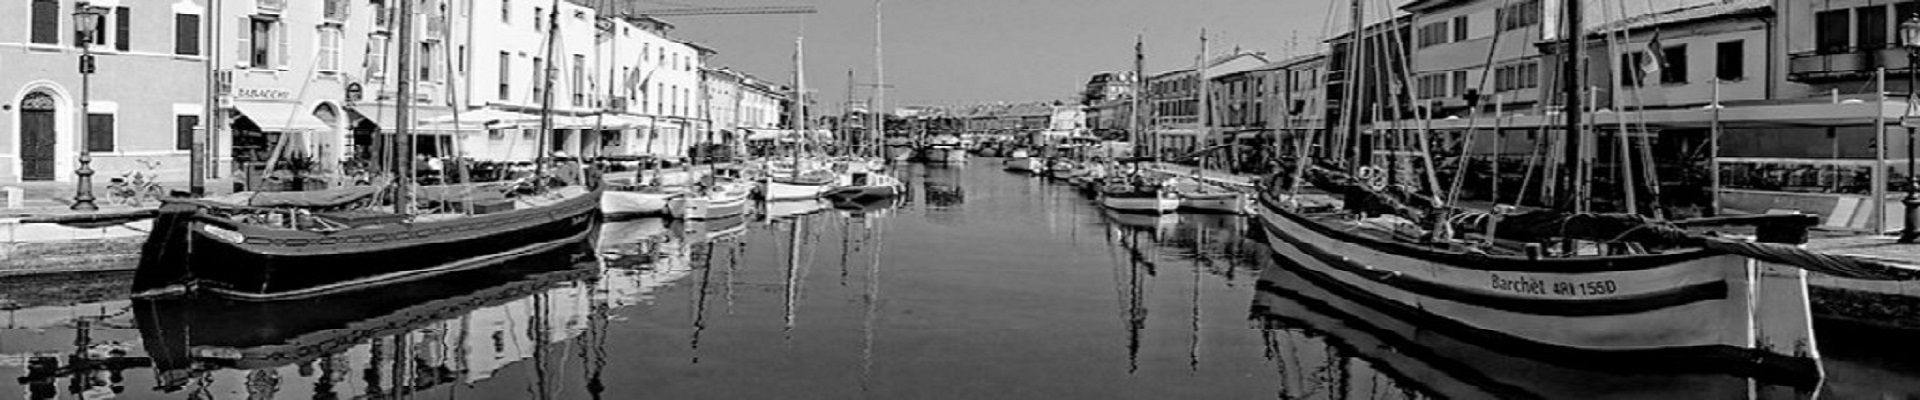 canale1920 x 400